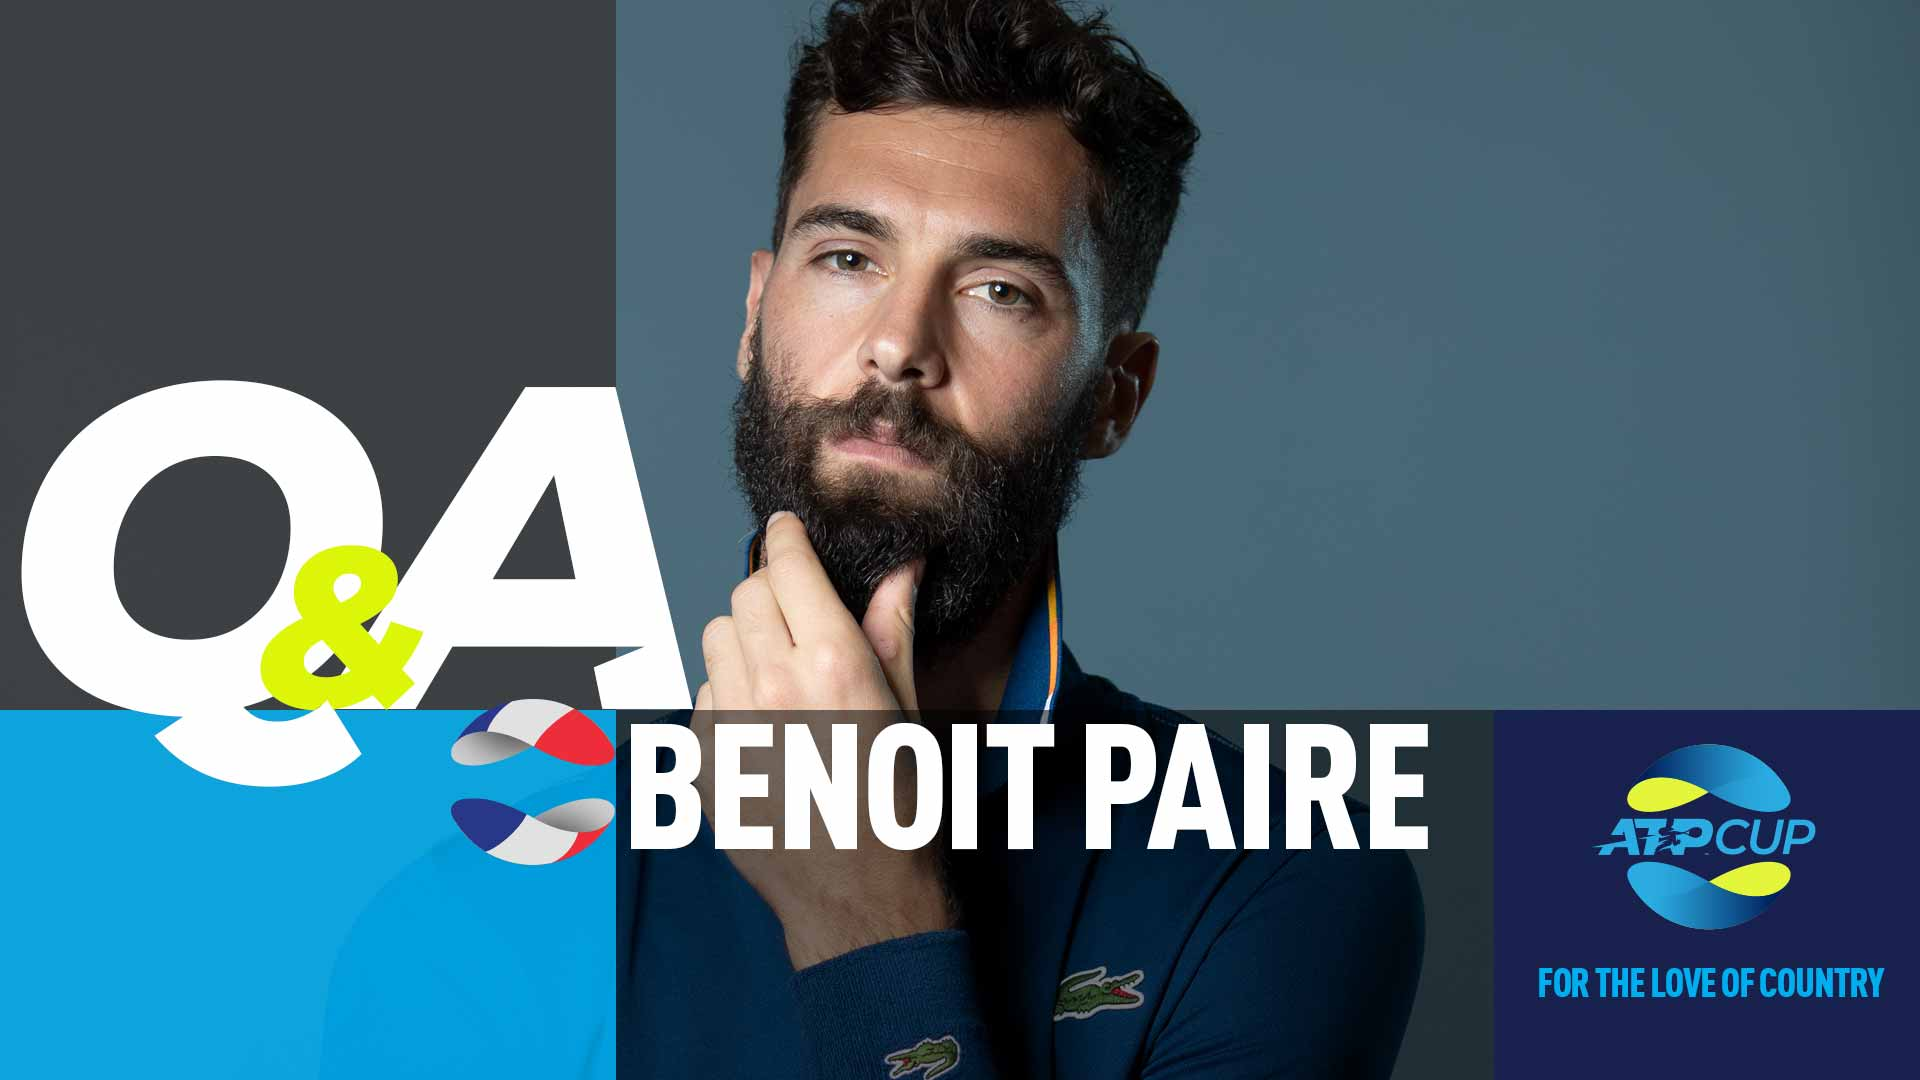 Paire ATP Cup Q&A